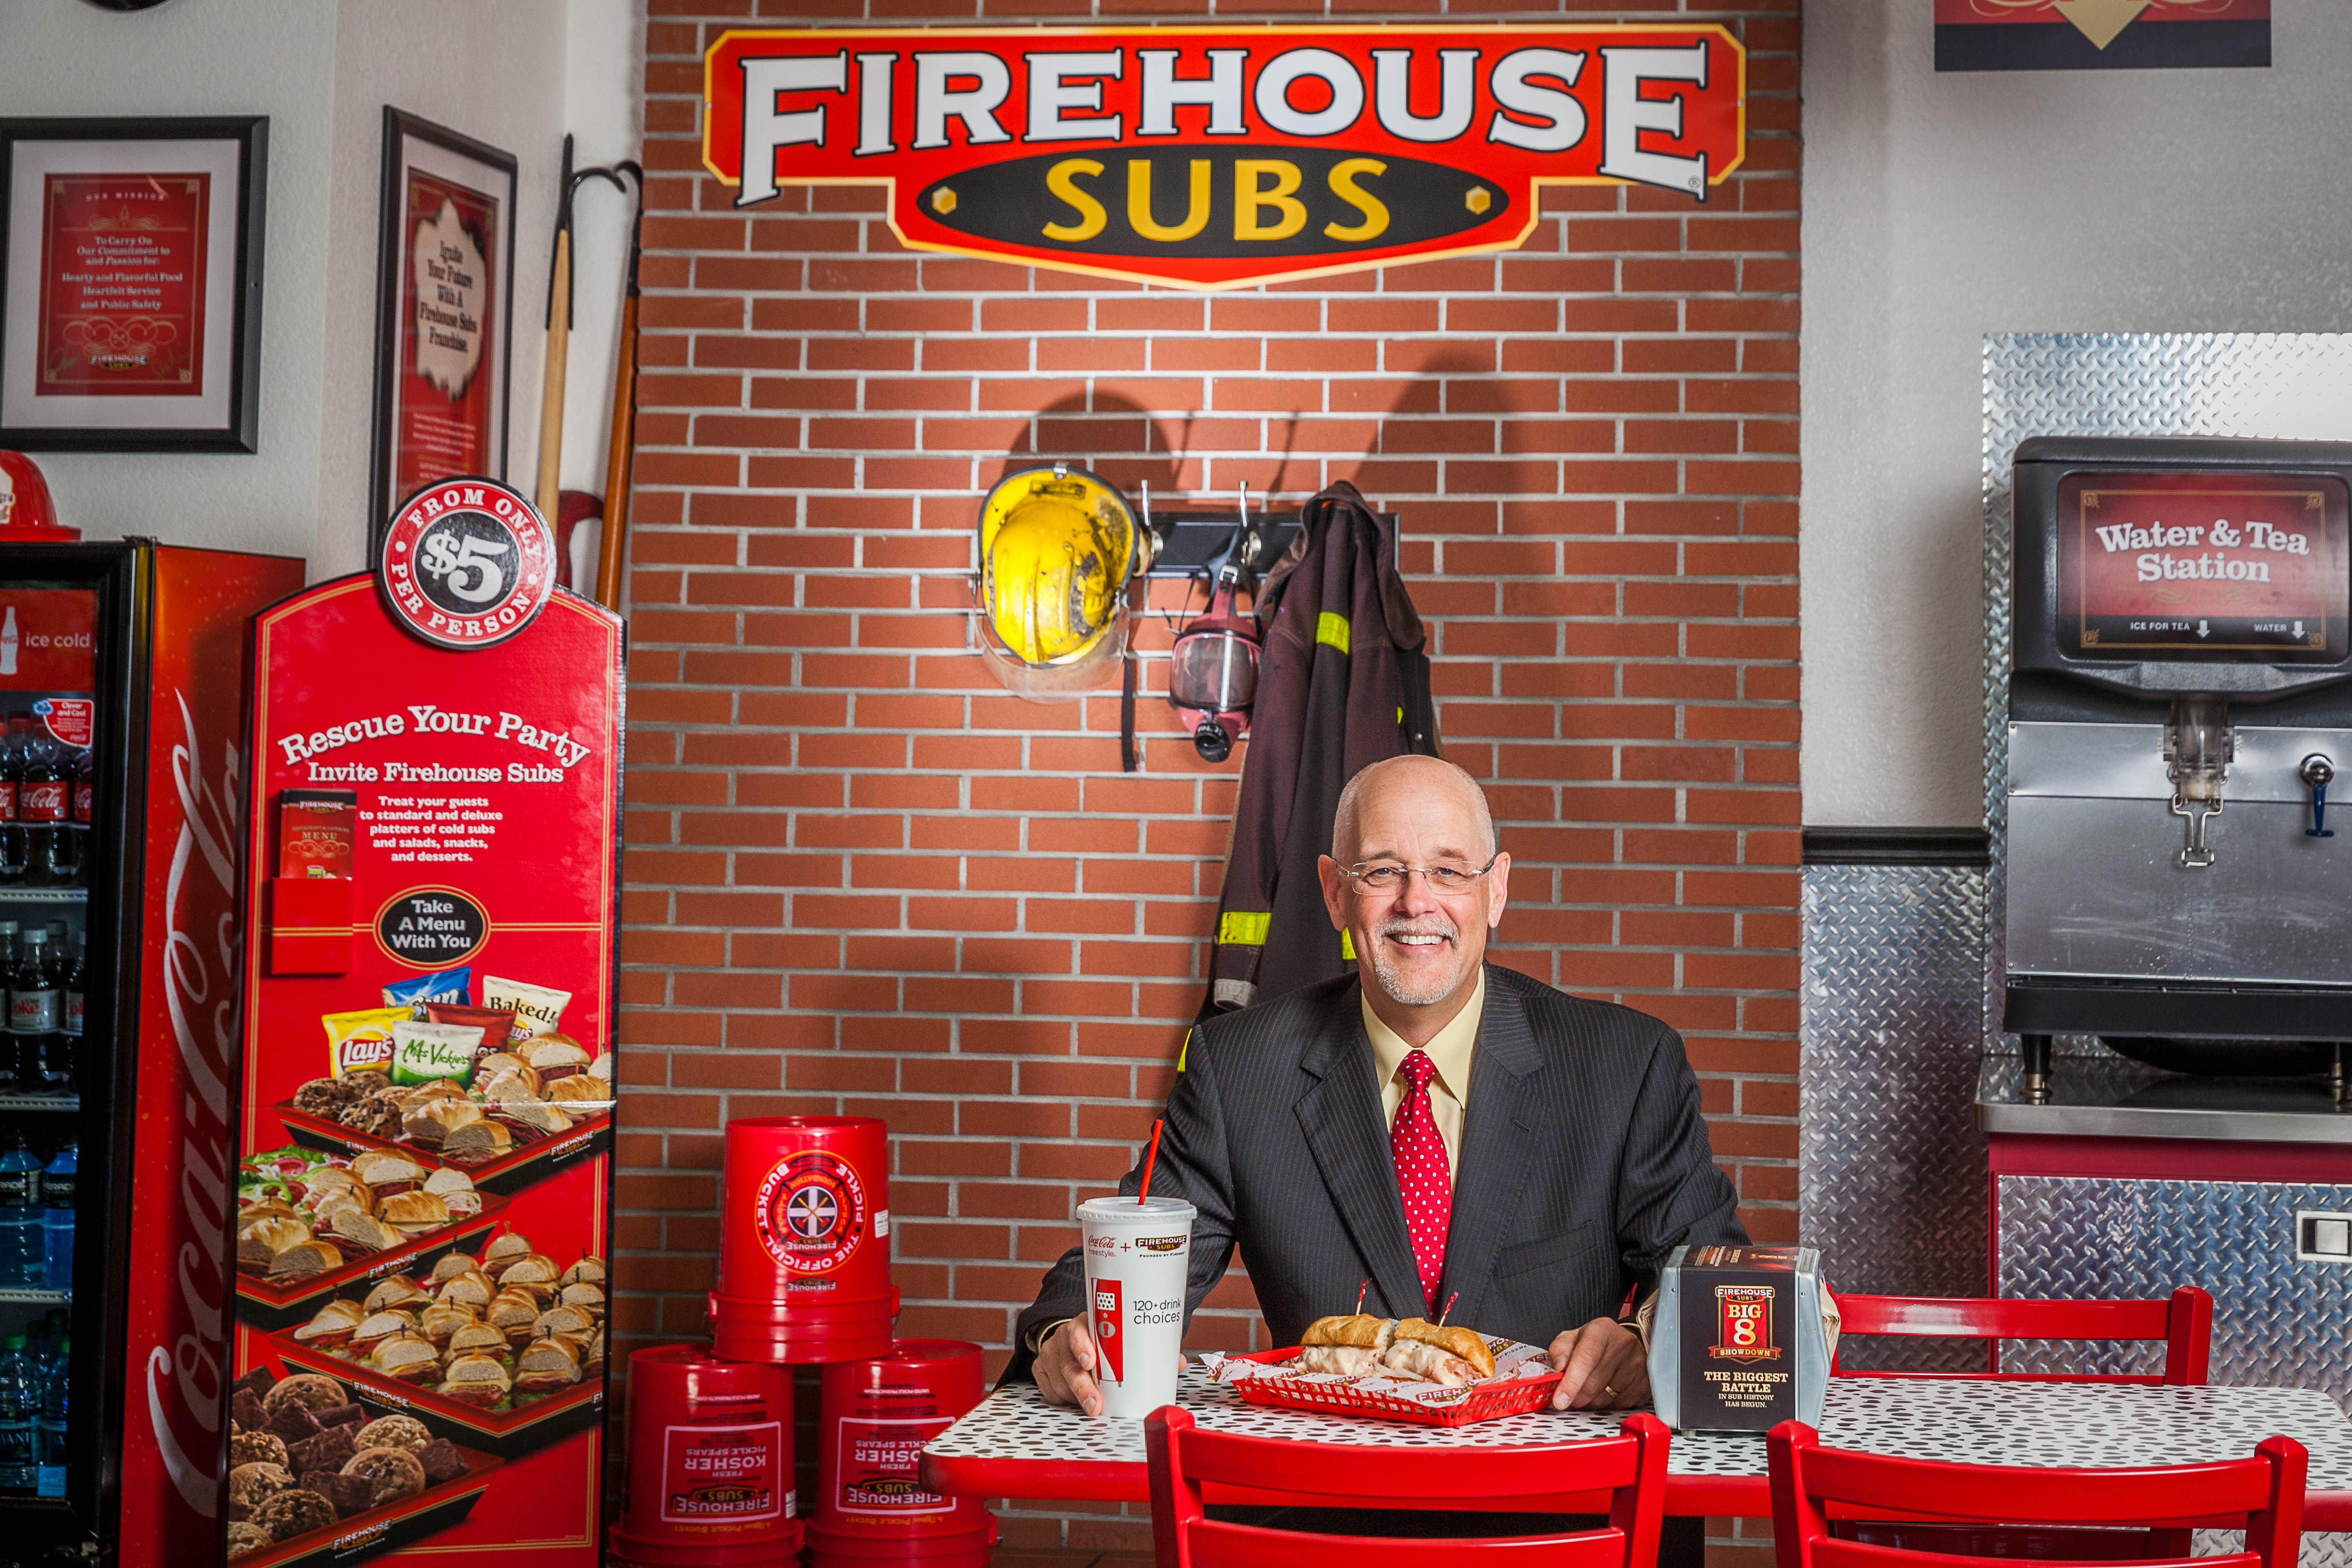 FIREHOUSE CEO DON FOX EMPHASIZES THE IMPORTANCE OF CULTURE